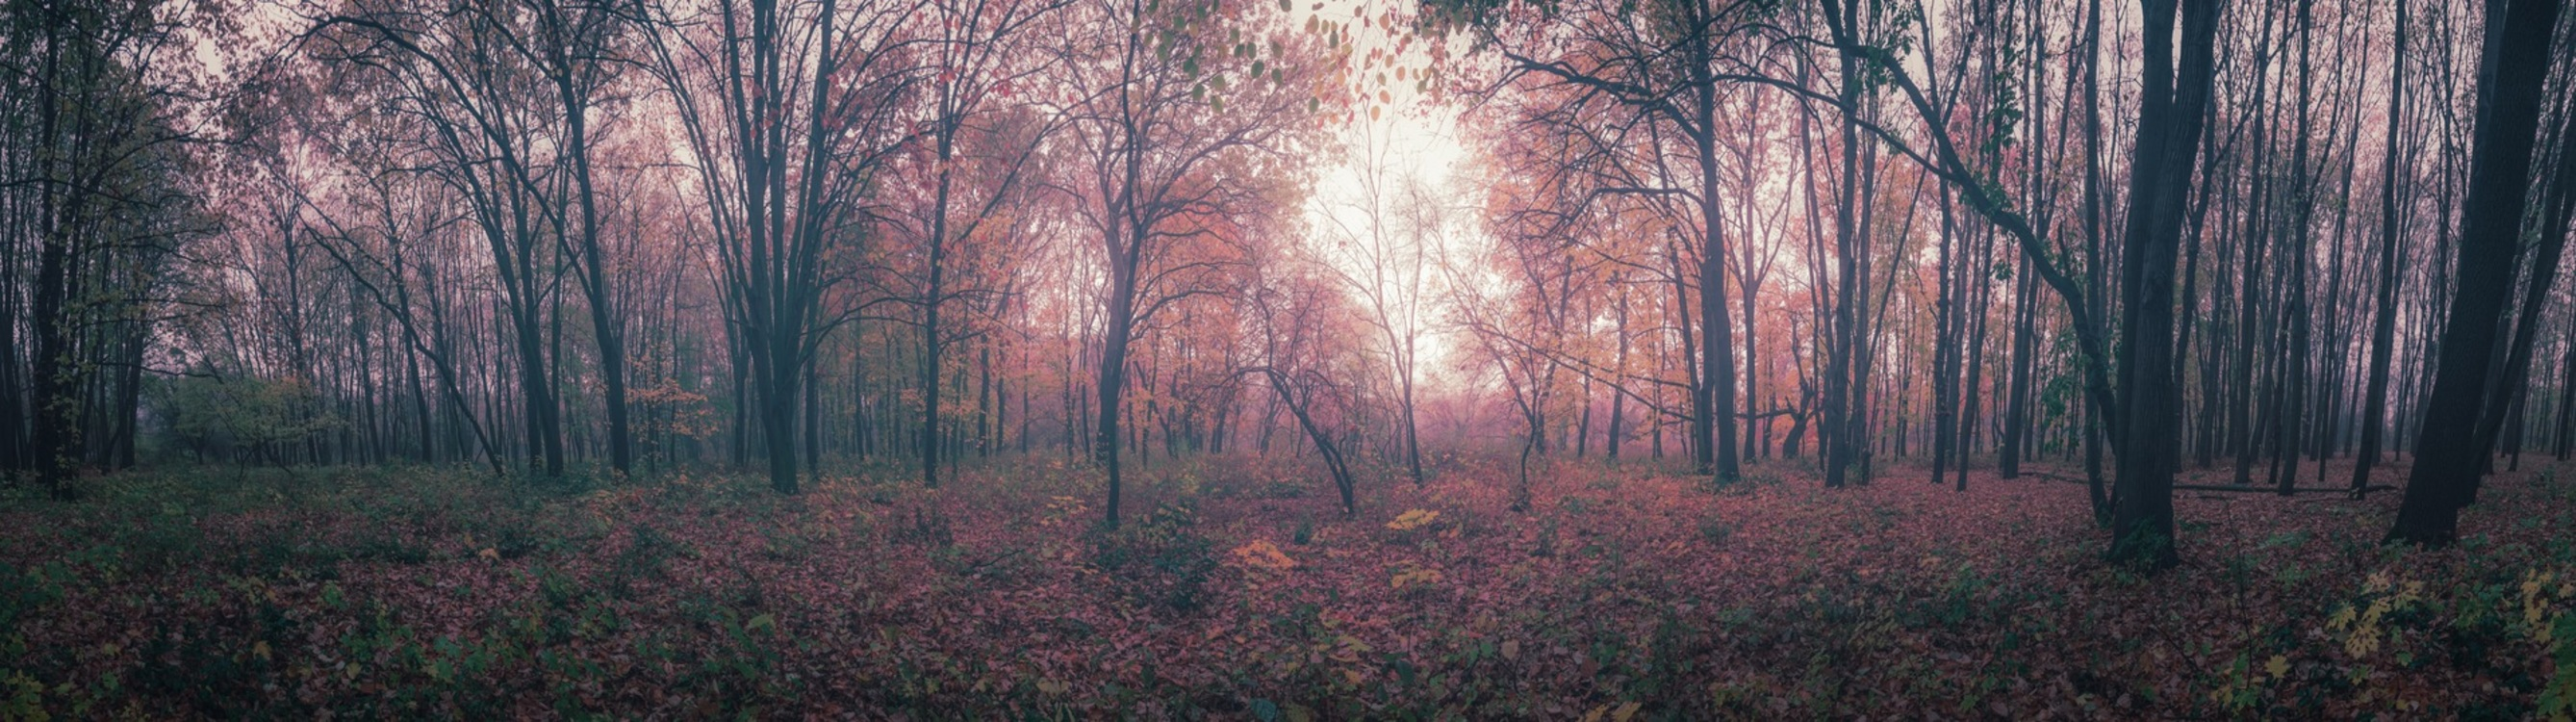 Atmosphere,Northern Hardwood Forest Concept,Temperate Broadleaf And Mixed Forest